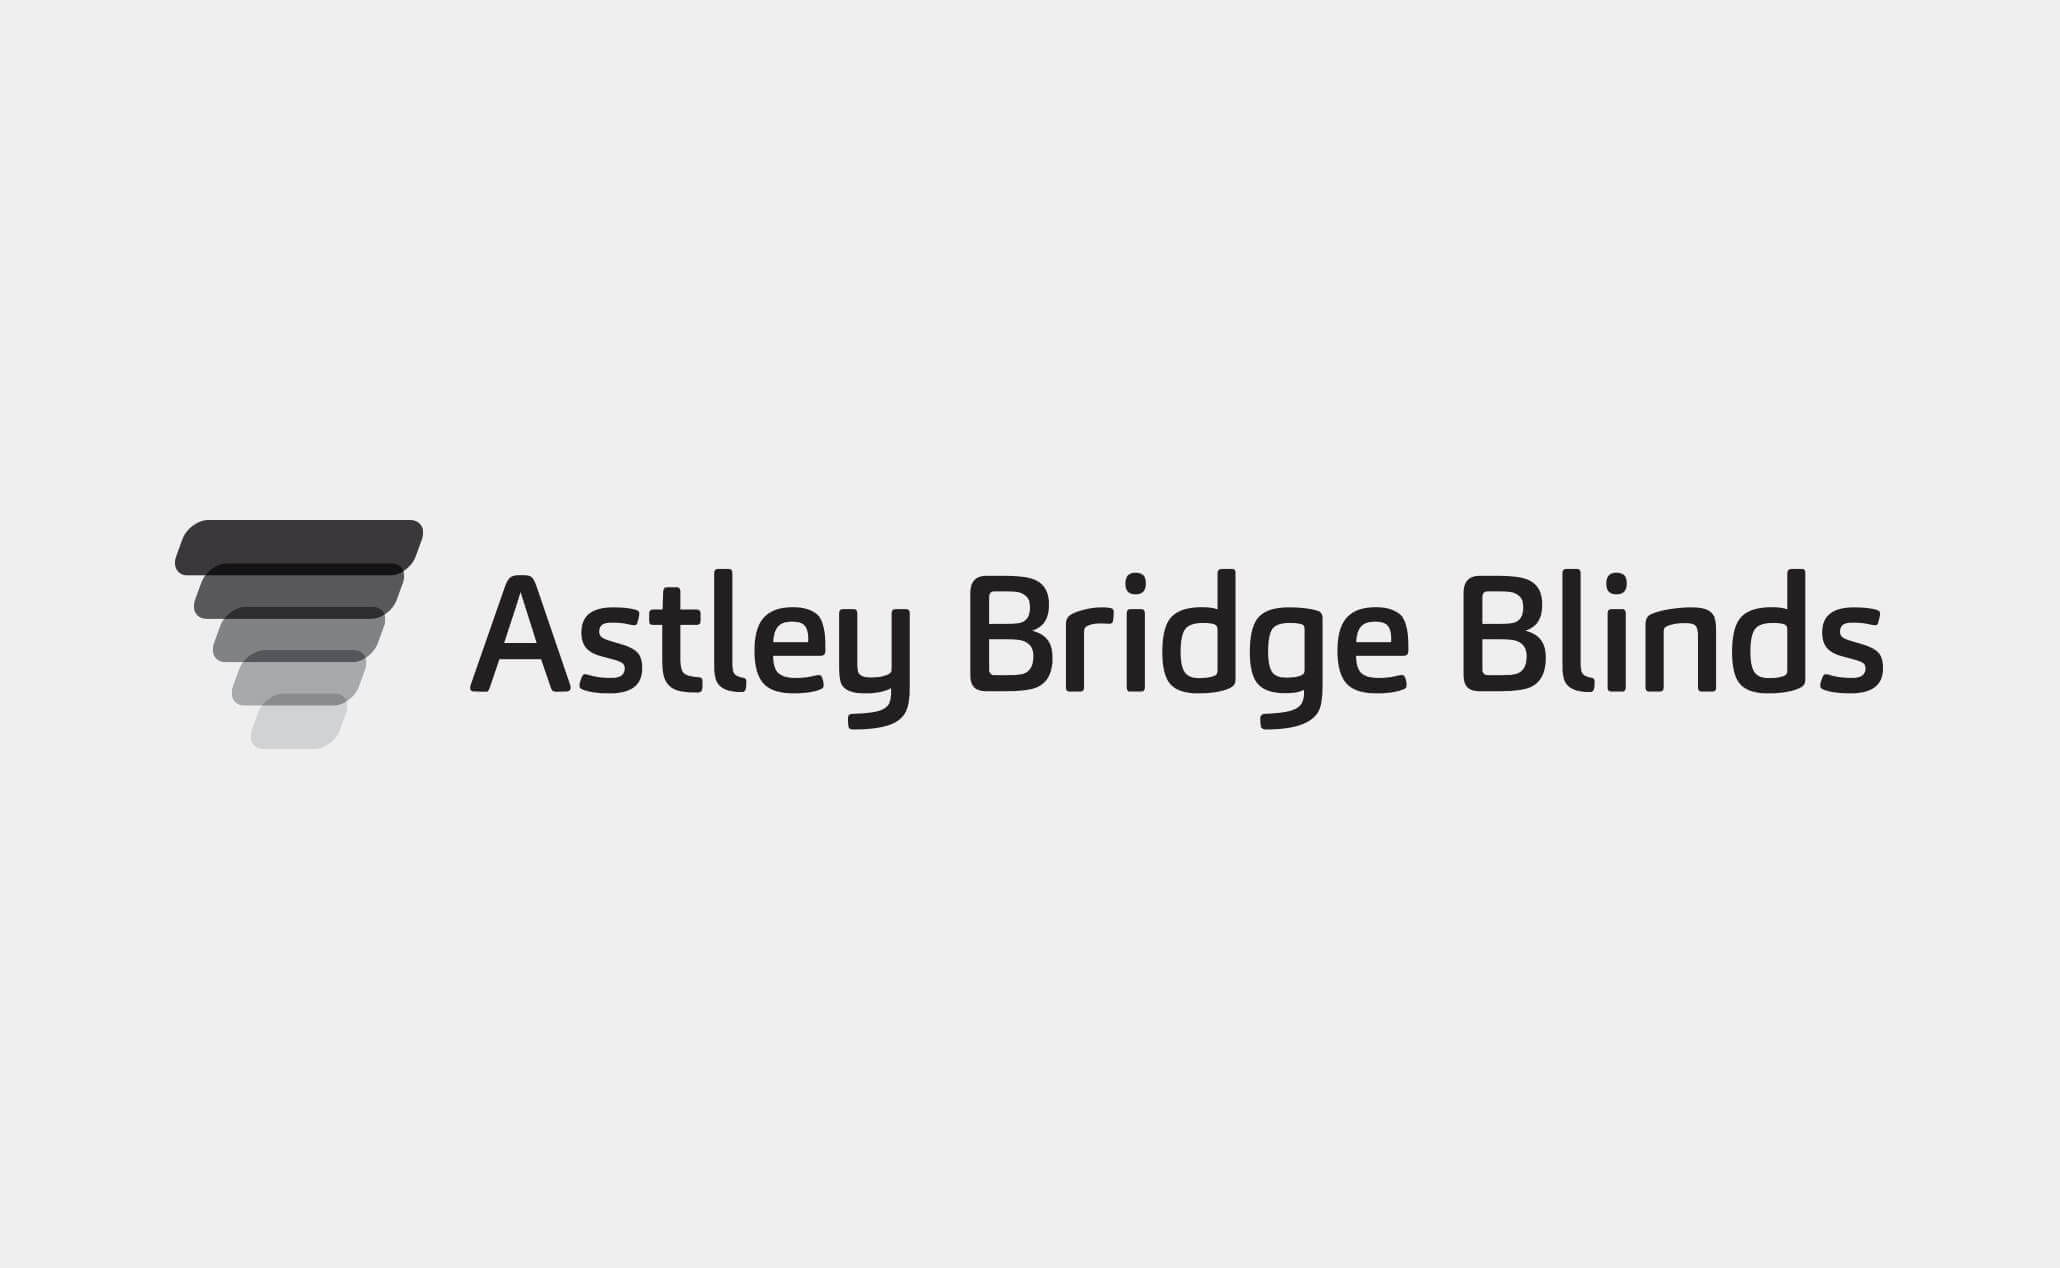 Astley Bridge Blinds logo